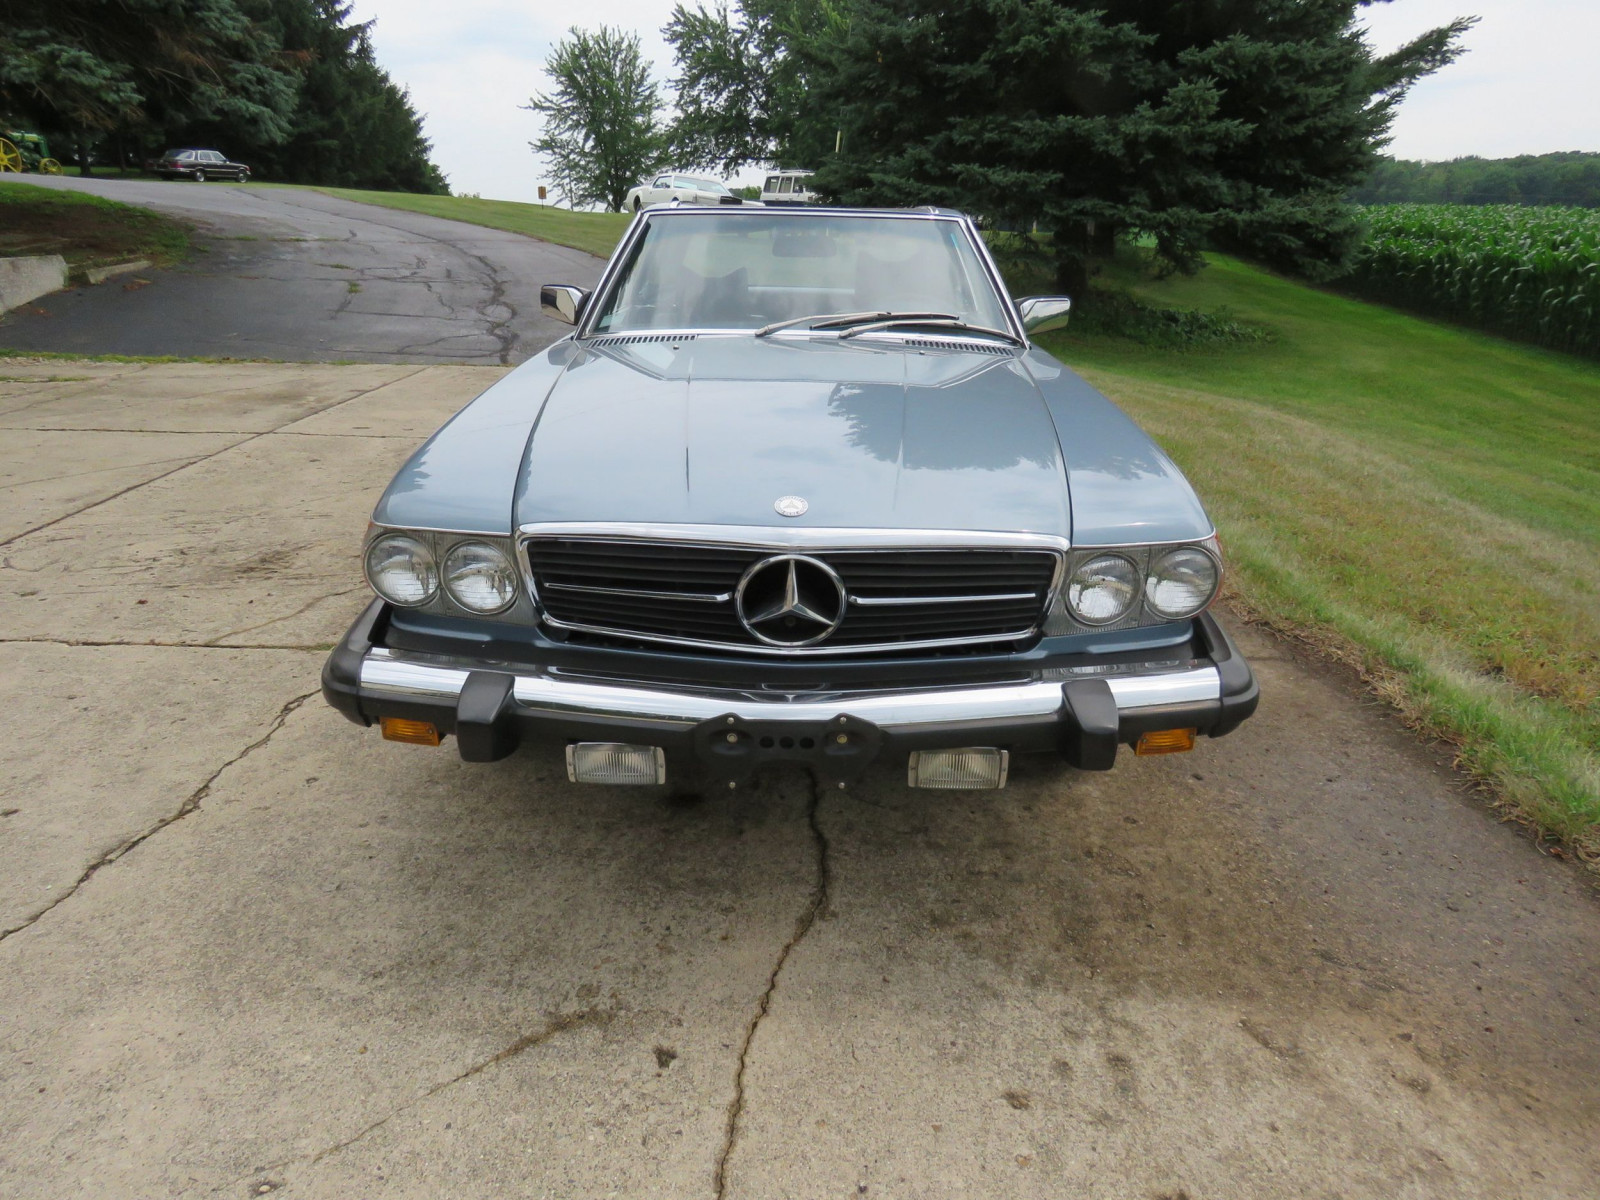 1979 Mercedes 450SL Coupe - Image 2